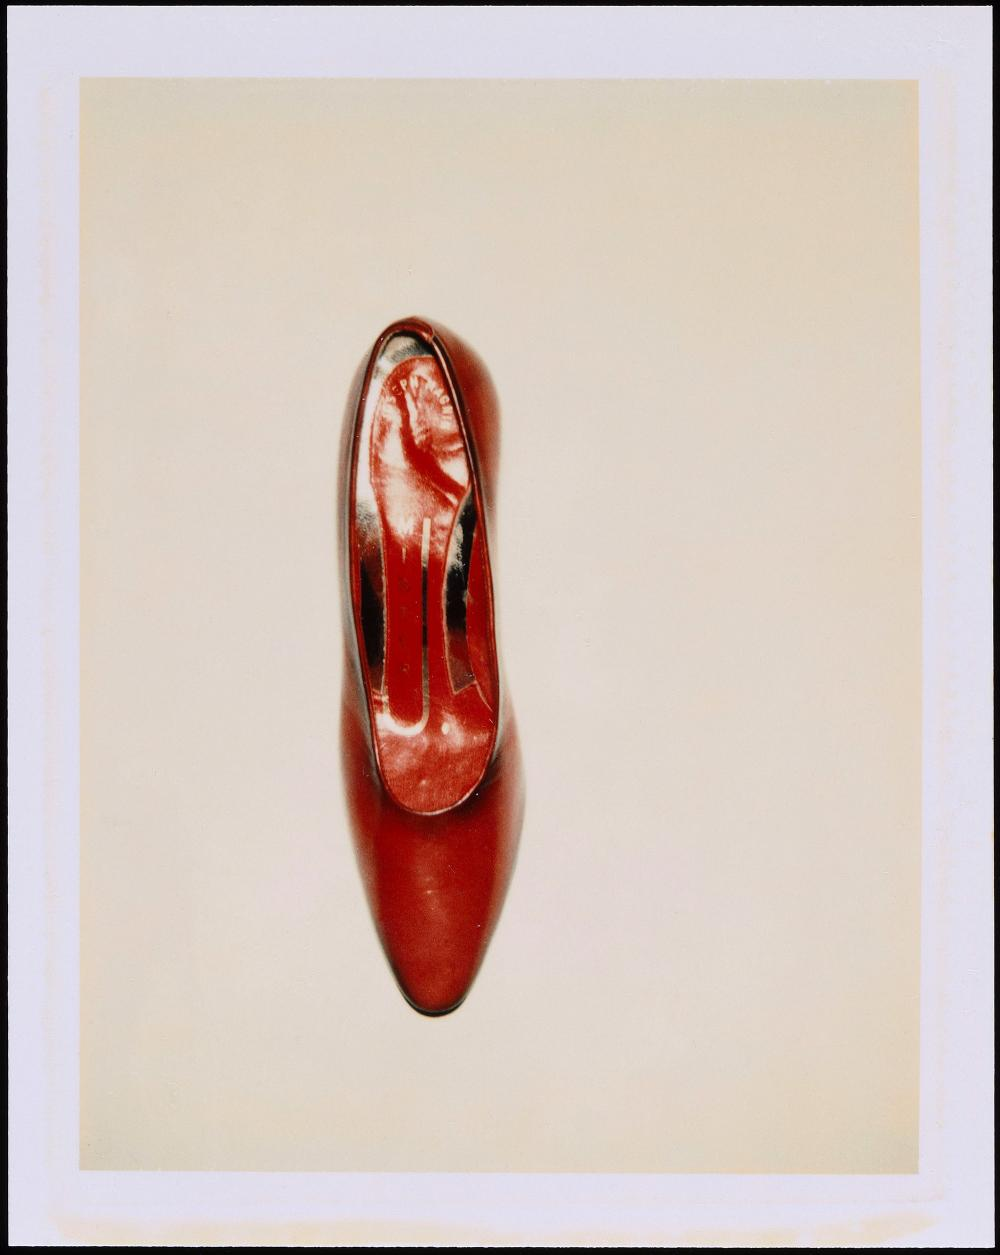 Womens' Shoes, 1981© Andy Warhol© The Andy Warhol Foundation for the Visual Arts, Inc.© Centre Pompidou, MNAM-CCI/Philippe Migeat/Dist. RMN-GP© Adagp, Paris© SABAM Belgium 2018